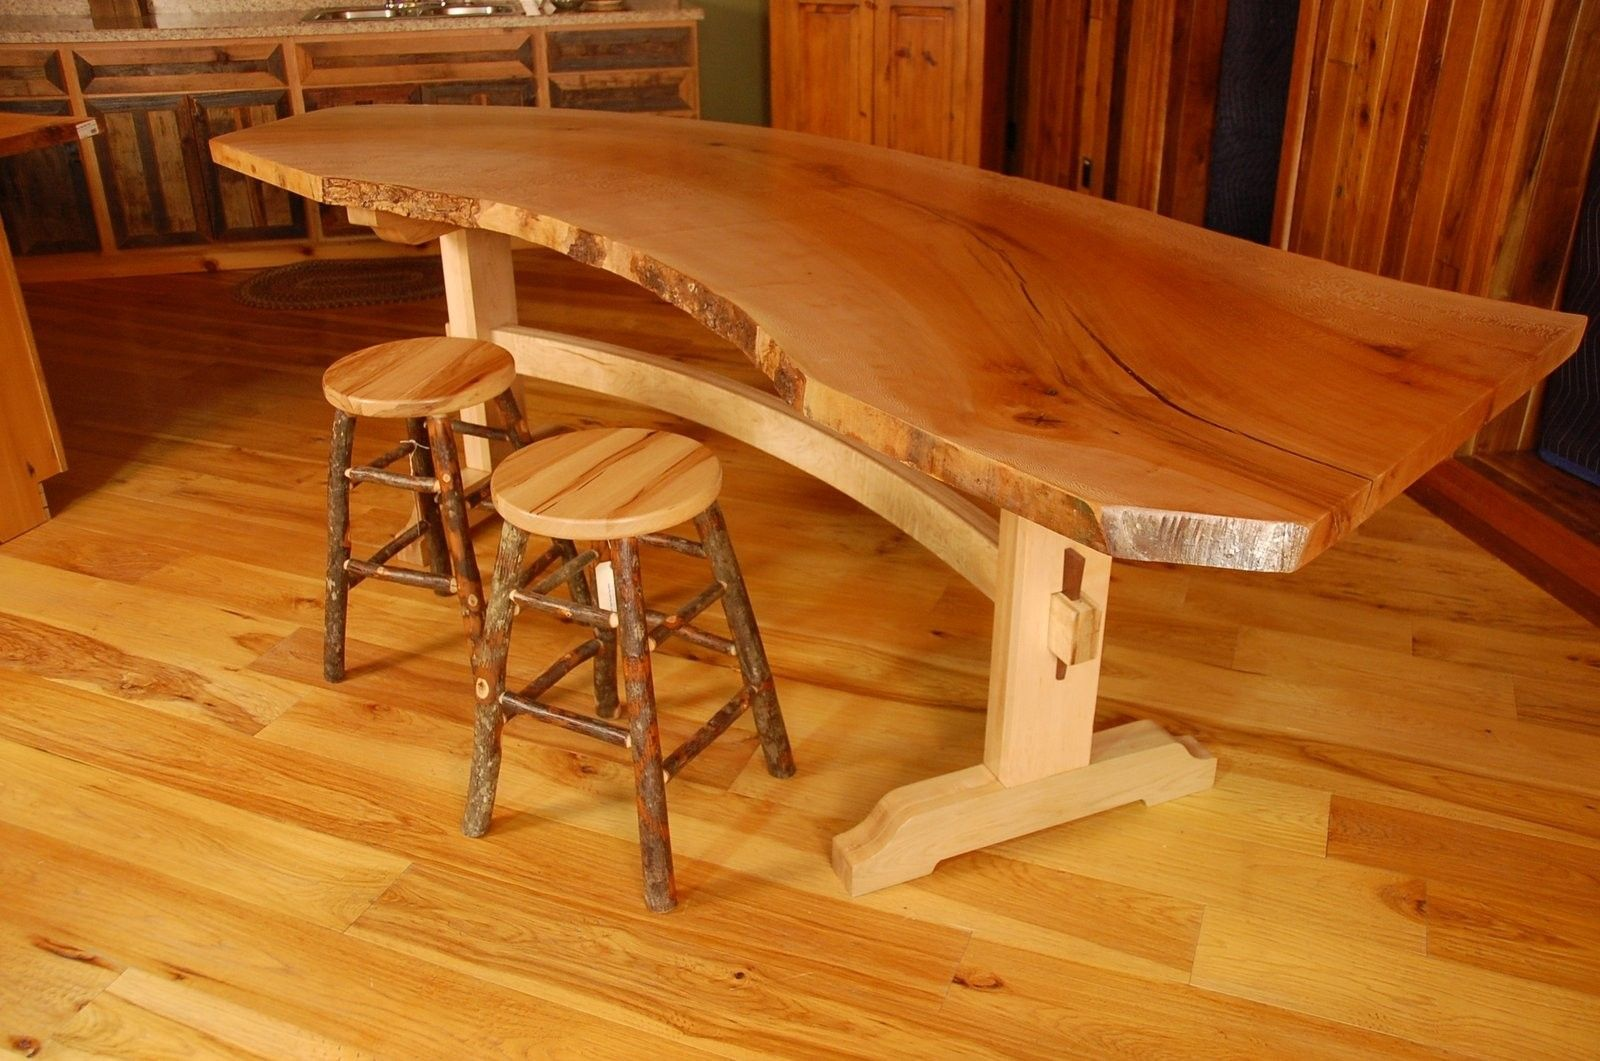 Japanese Dining Table For Sale Handmade Sycamore Live Edge Slab Dining Table By Corey